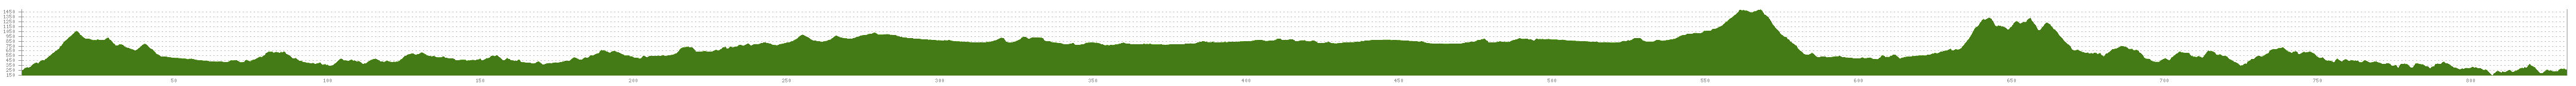 Elevation profile Cycle Route EuroVelo: Pilgrims Route - Part Spain